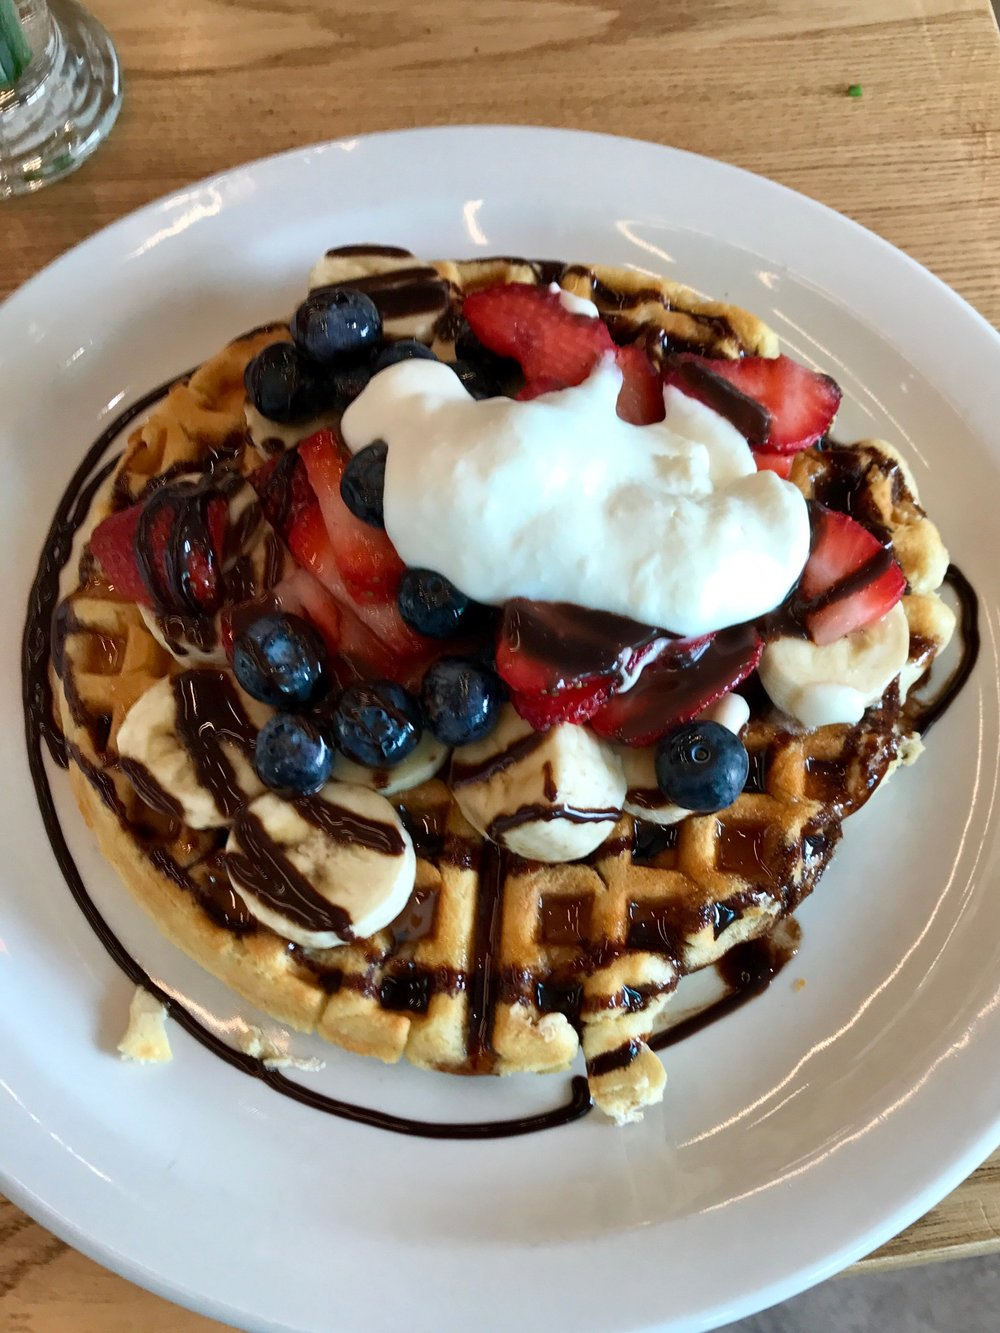 Who can resist these scrumptious waffles topped with banana, seasonal berries, whipped cream and chocolate syrup.   Kid friendly, adult friendly, even dog friendly minus the chocolate syrup.